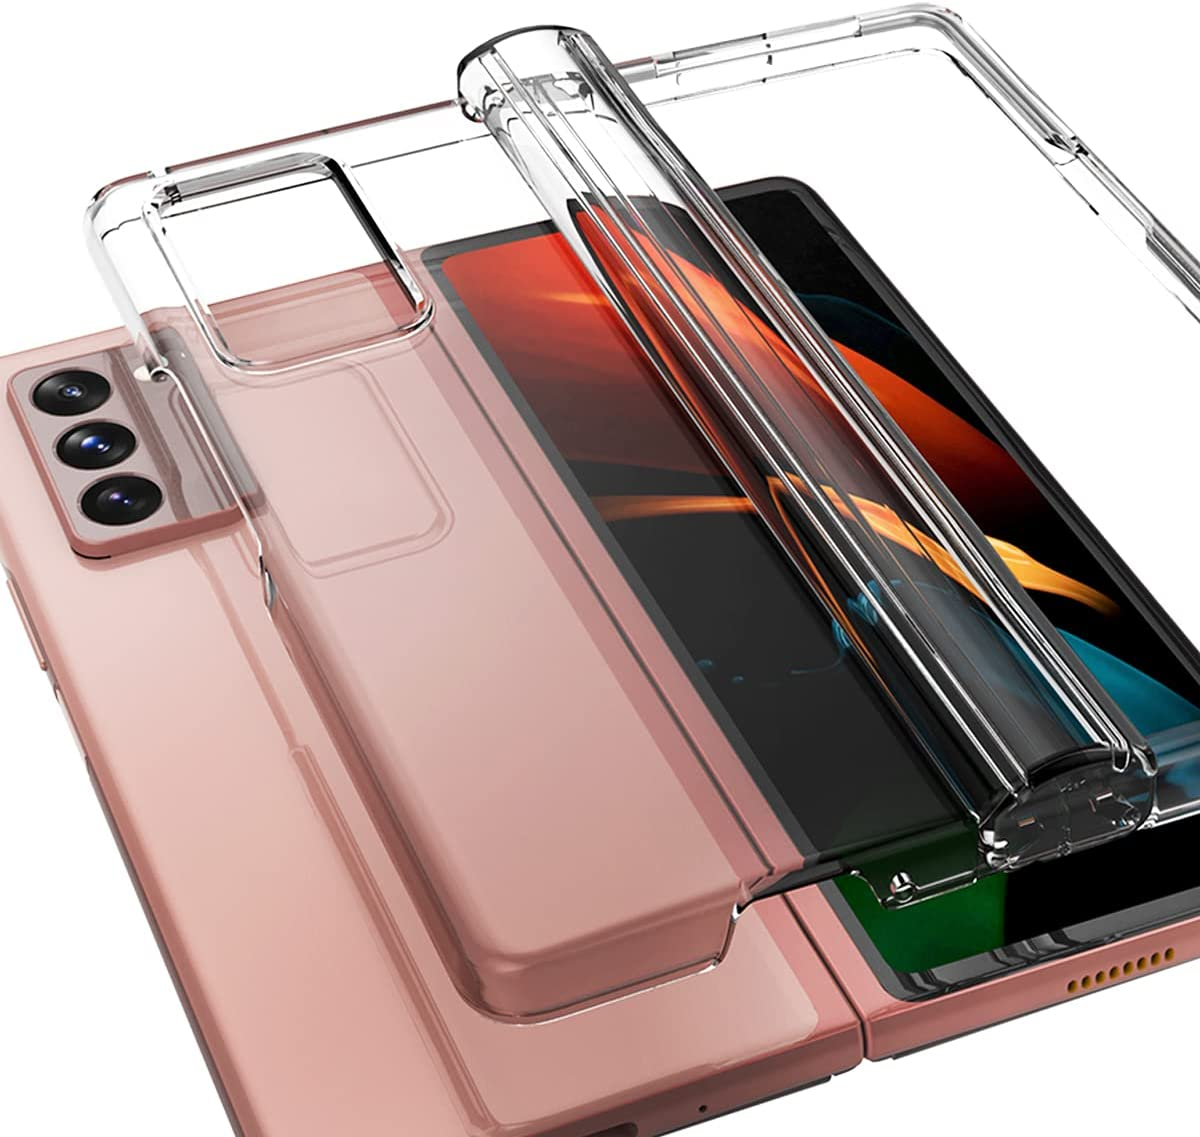 araree Nukin 360 Compatible with Samsung Galaxy Z Fold 2 5G Cover Clear Transparent Surrounding Hinge Part Protection Hard Polycarbonate Lightweight Case - Clear